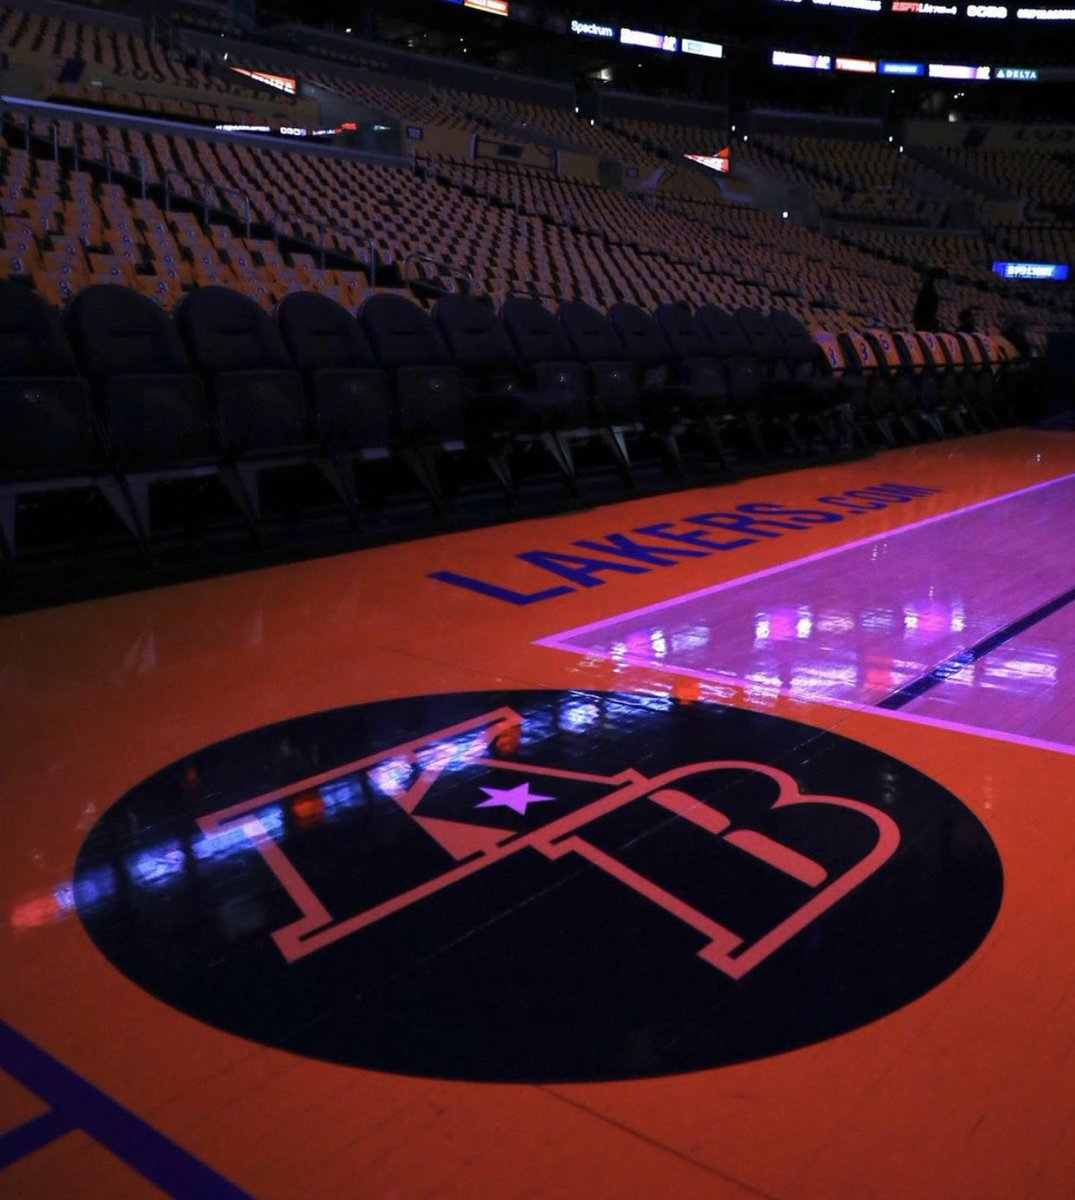 The Lakers added Kobe's numbers and a logo for tonight's game at Staples Center.